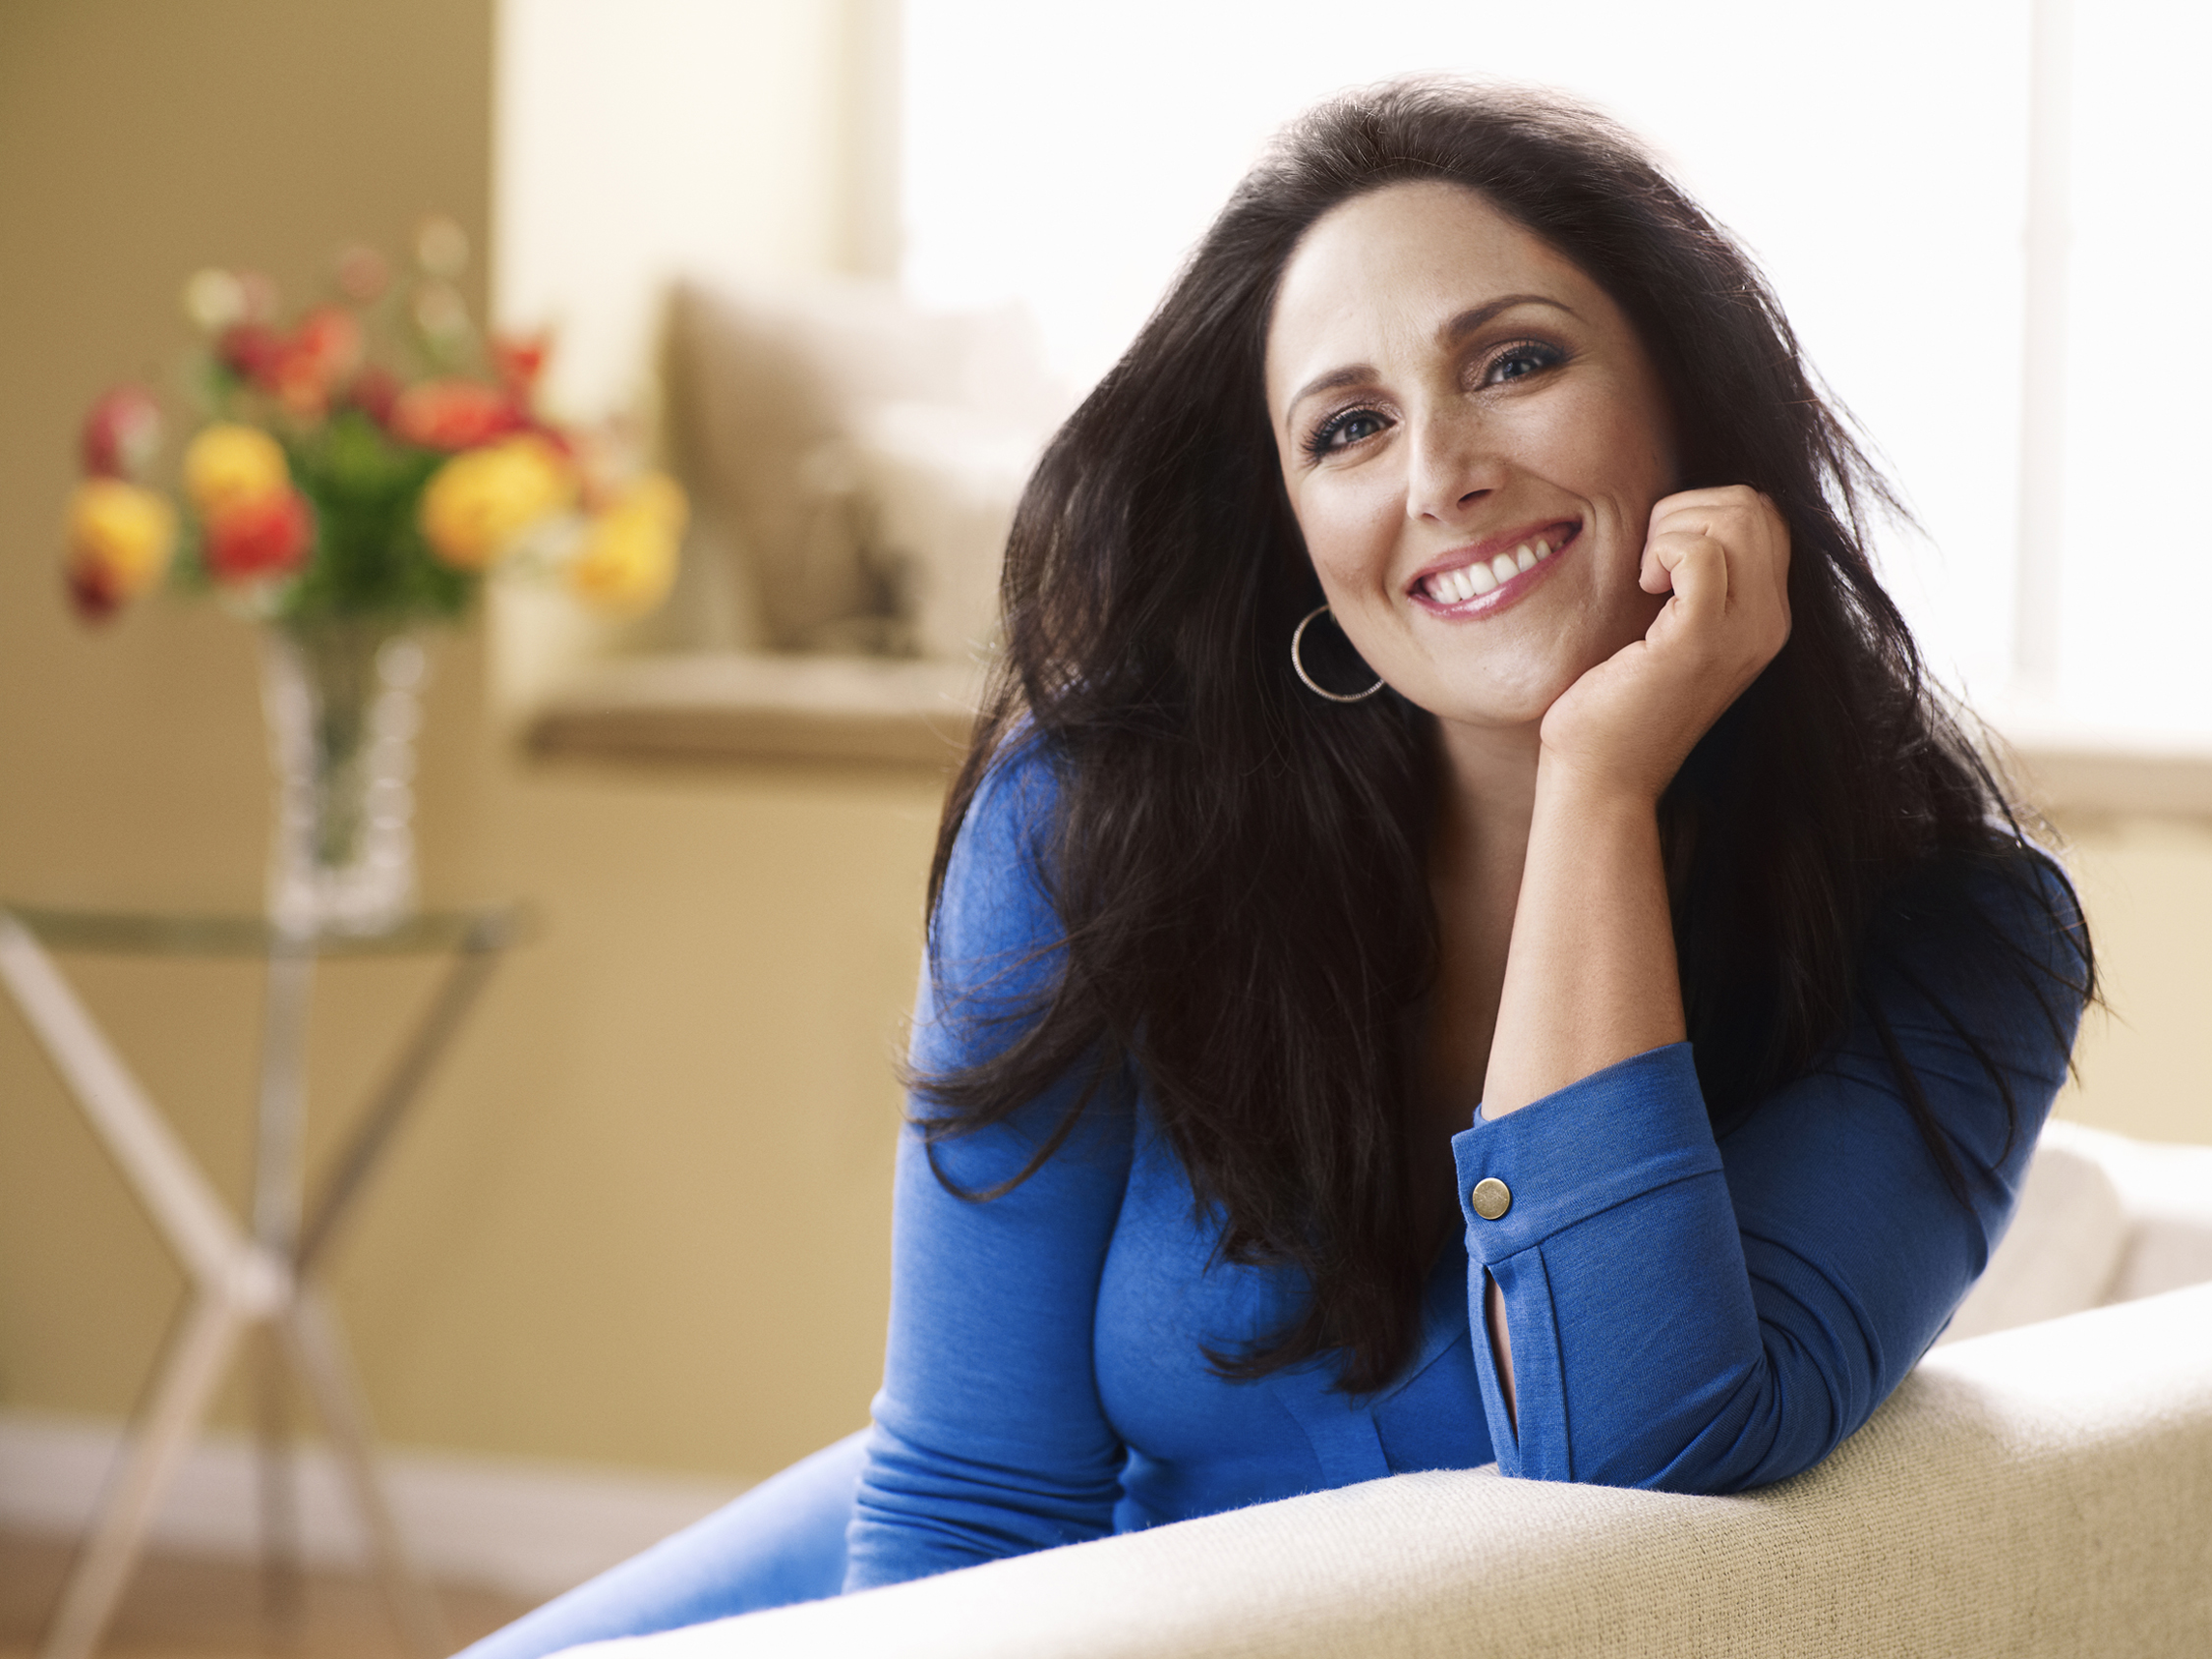 """LOS ANGELES, CA - MAY 20:  In this handout photo provided by 20th Television, Ricki Lake poses during a portrait shoot for her new talk show """"The Ricki Lake Show"""" on May 20, 2011 in Los Angeles, California.  (Photo by Art Streiber/20th Television via Getty Images)"""